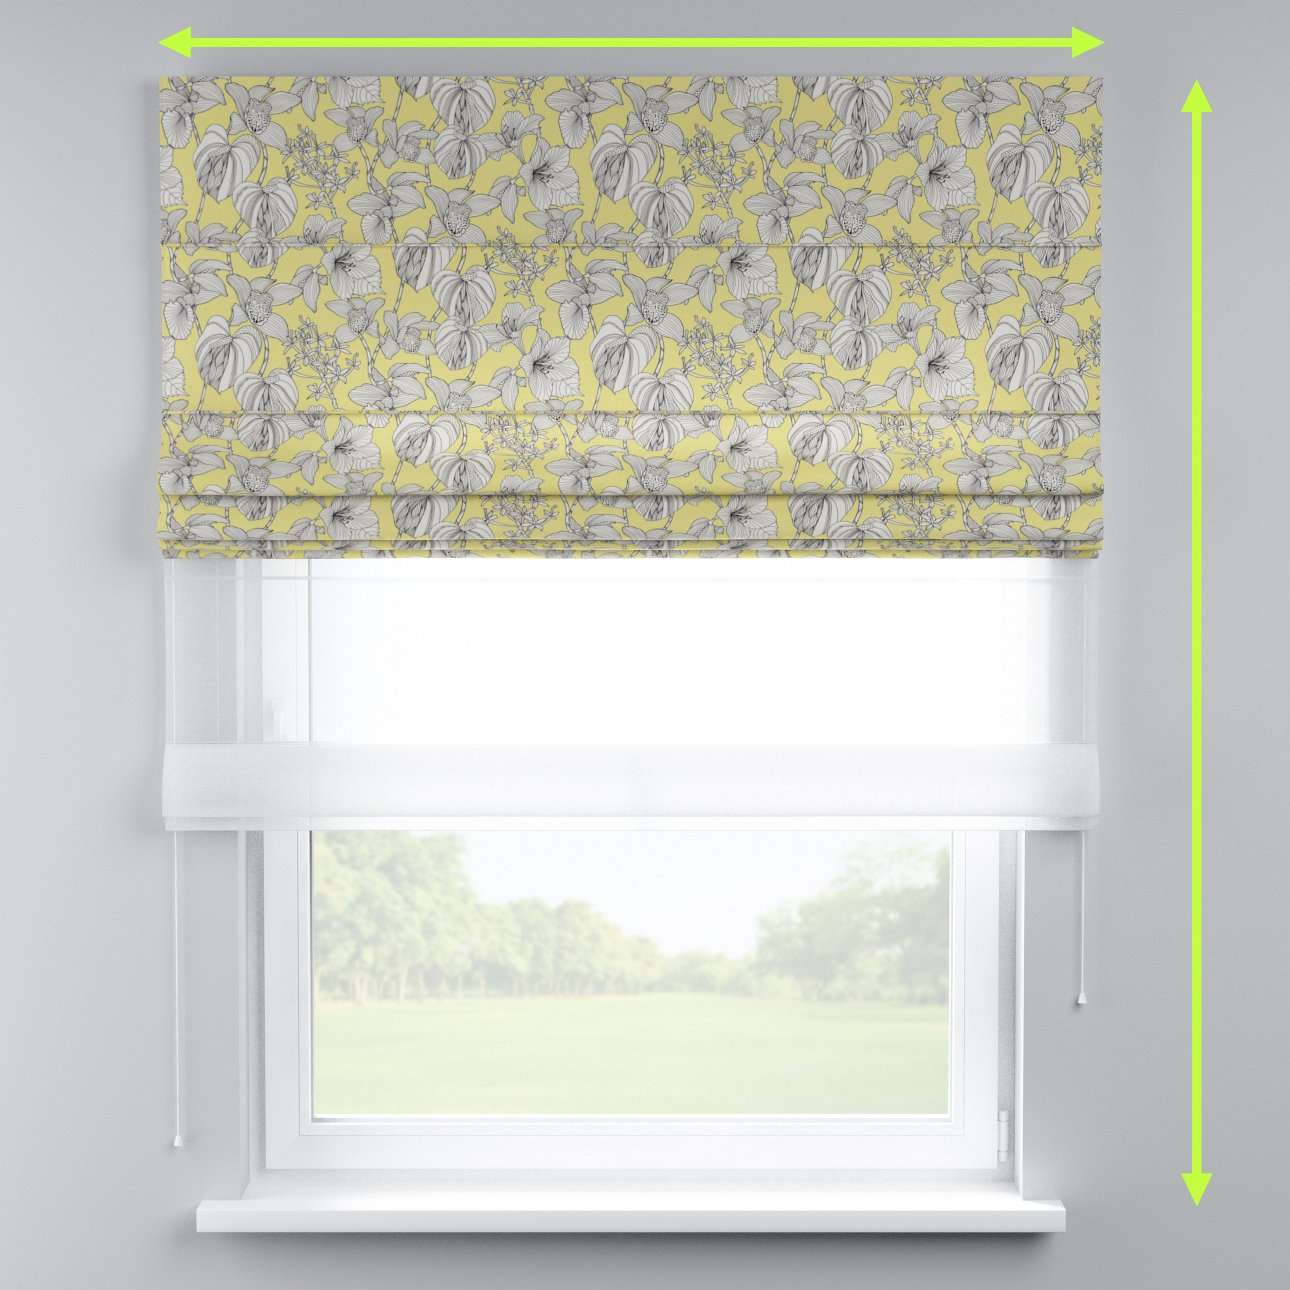 Voile and fabric roman blind (DUO II) in collection Brooklyn, fabric: 137-78